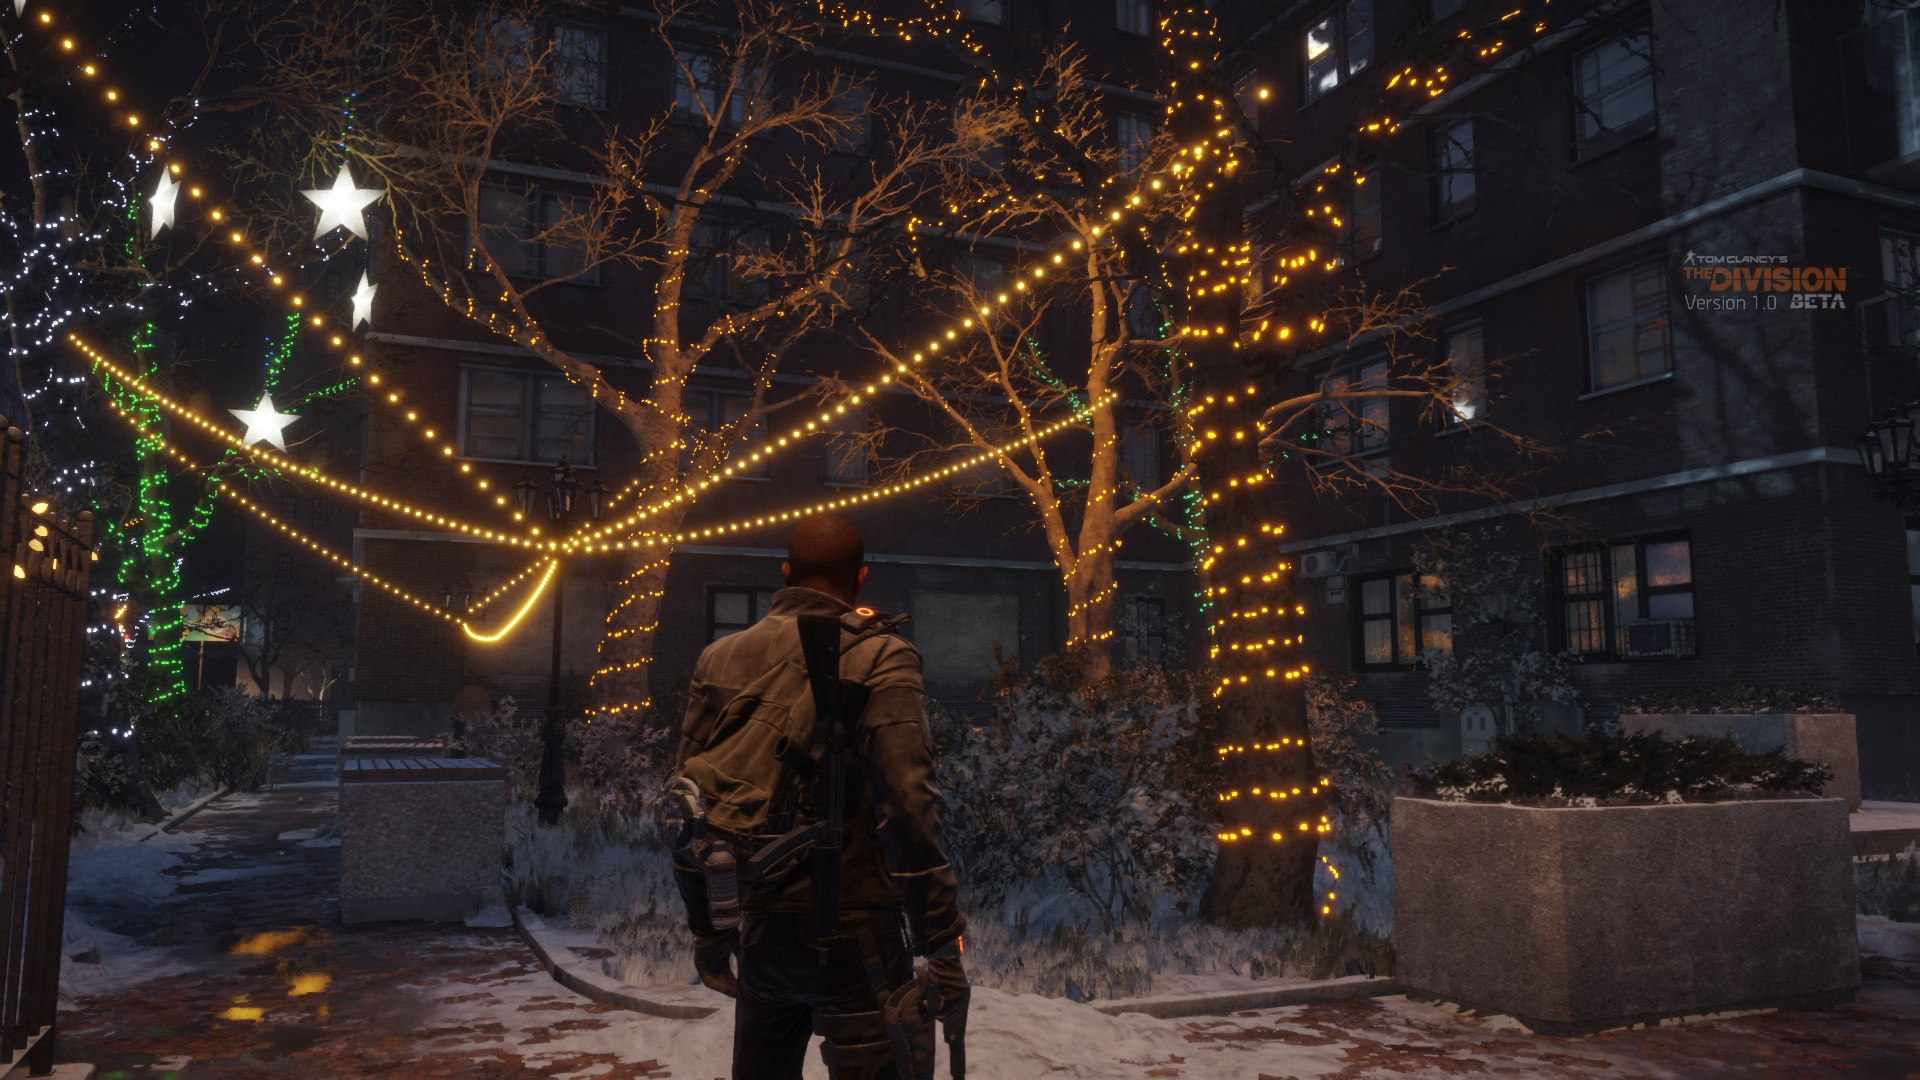 tom clancy 39 s the division beta already playable on ps4 leaked 1080p screenshots shows stunning. Black Bedroom Furniture Sets. Home Design Ideas